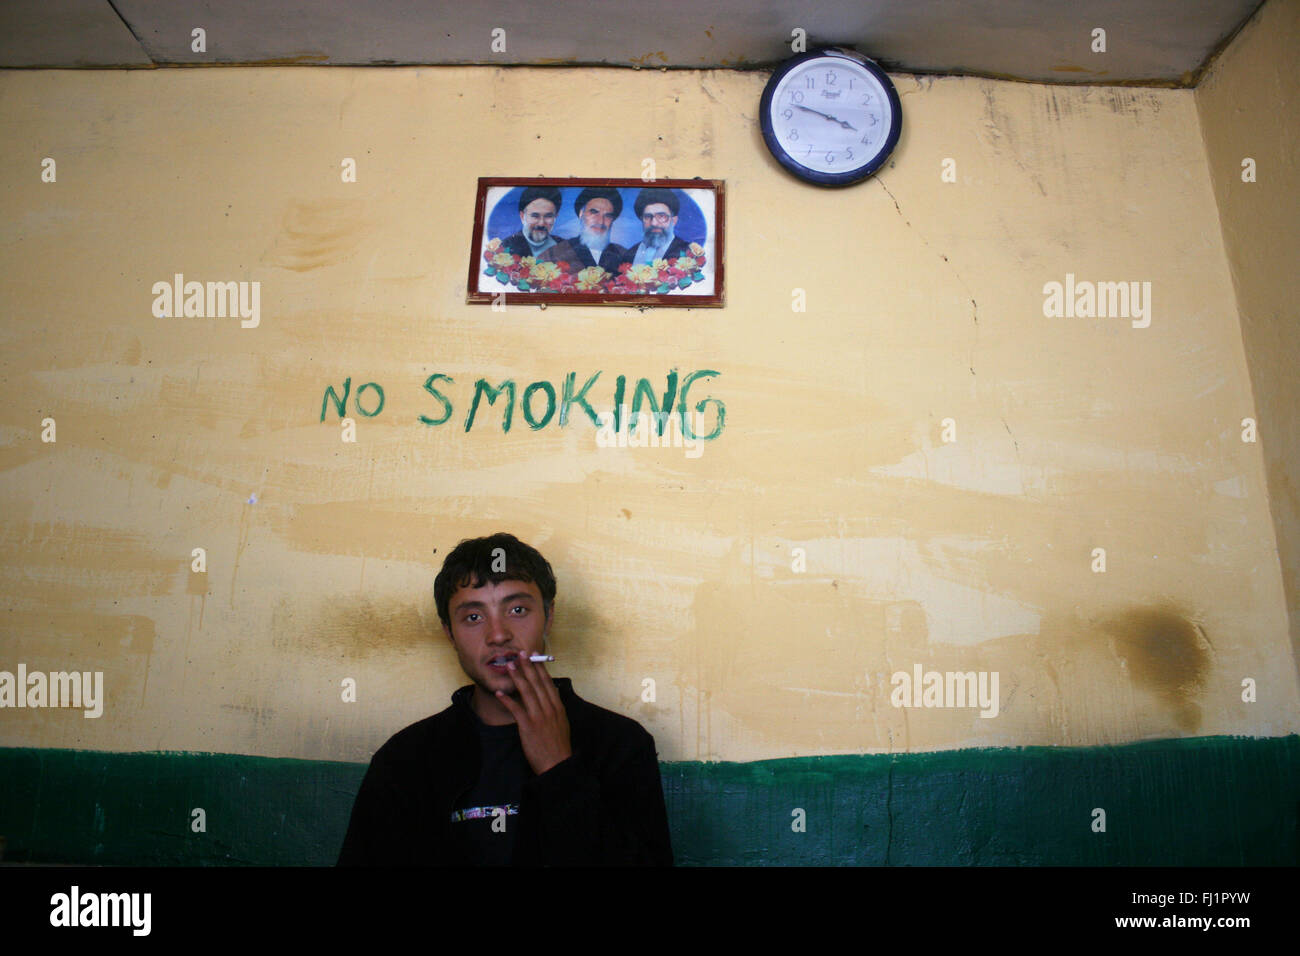 Kashmiri man smoking in restaurant in Leh, India, under a 'no smoking' writing on the wall - Stock Image